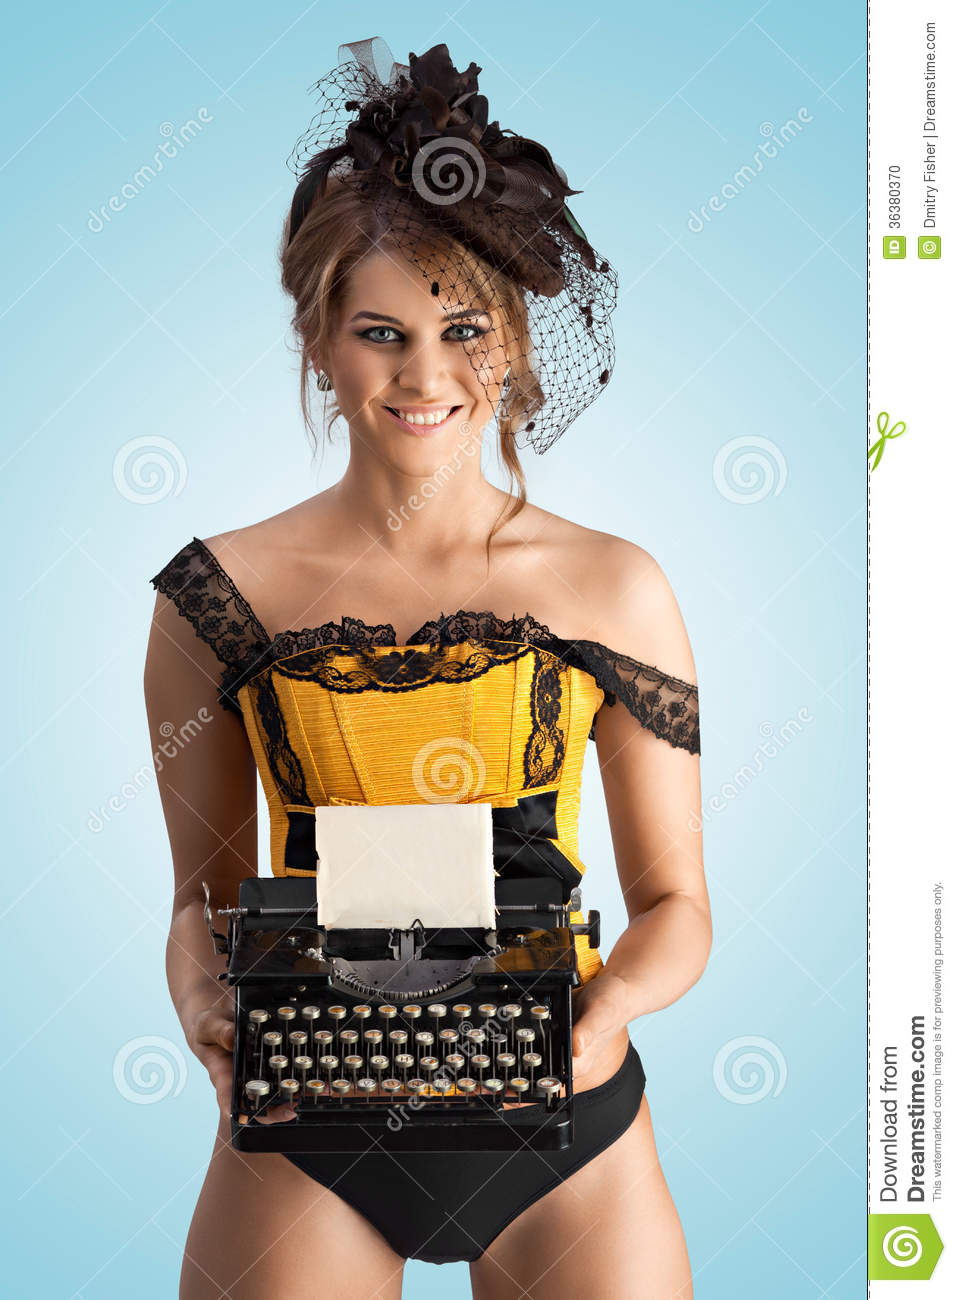 Type Me Wisely Stock Photo Image Of Machine Enjoyment